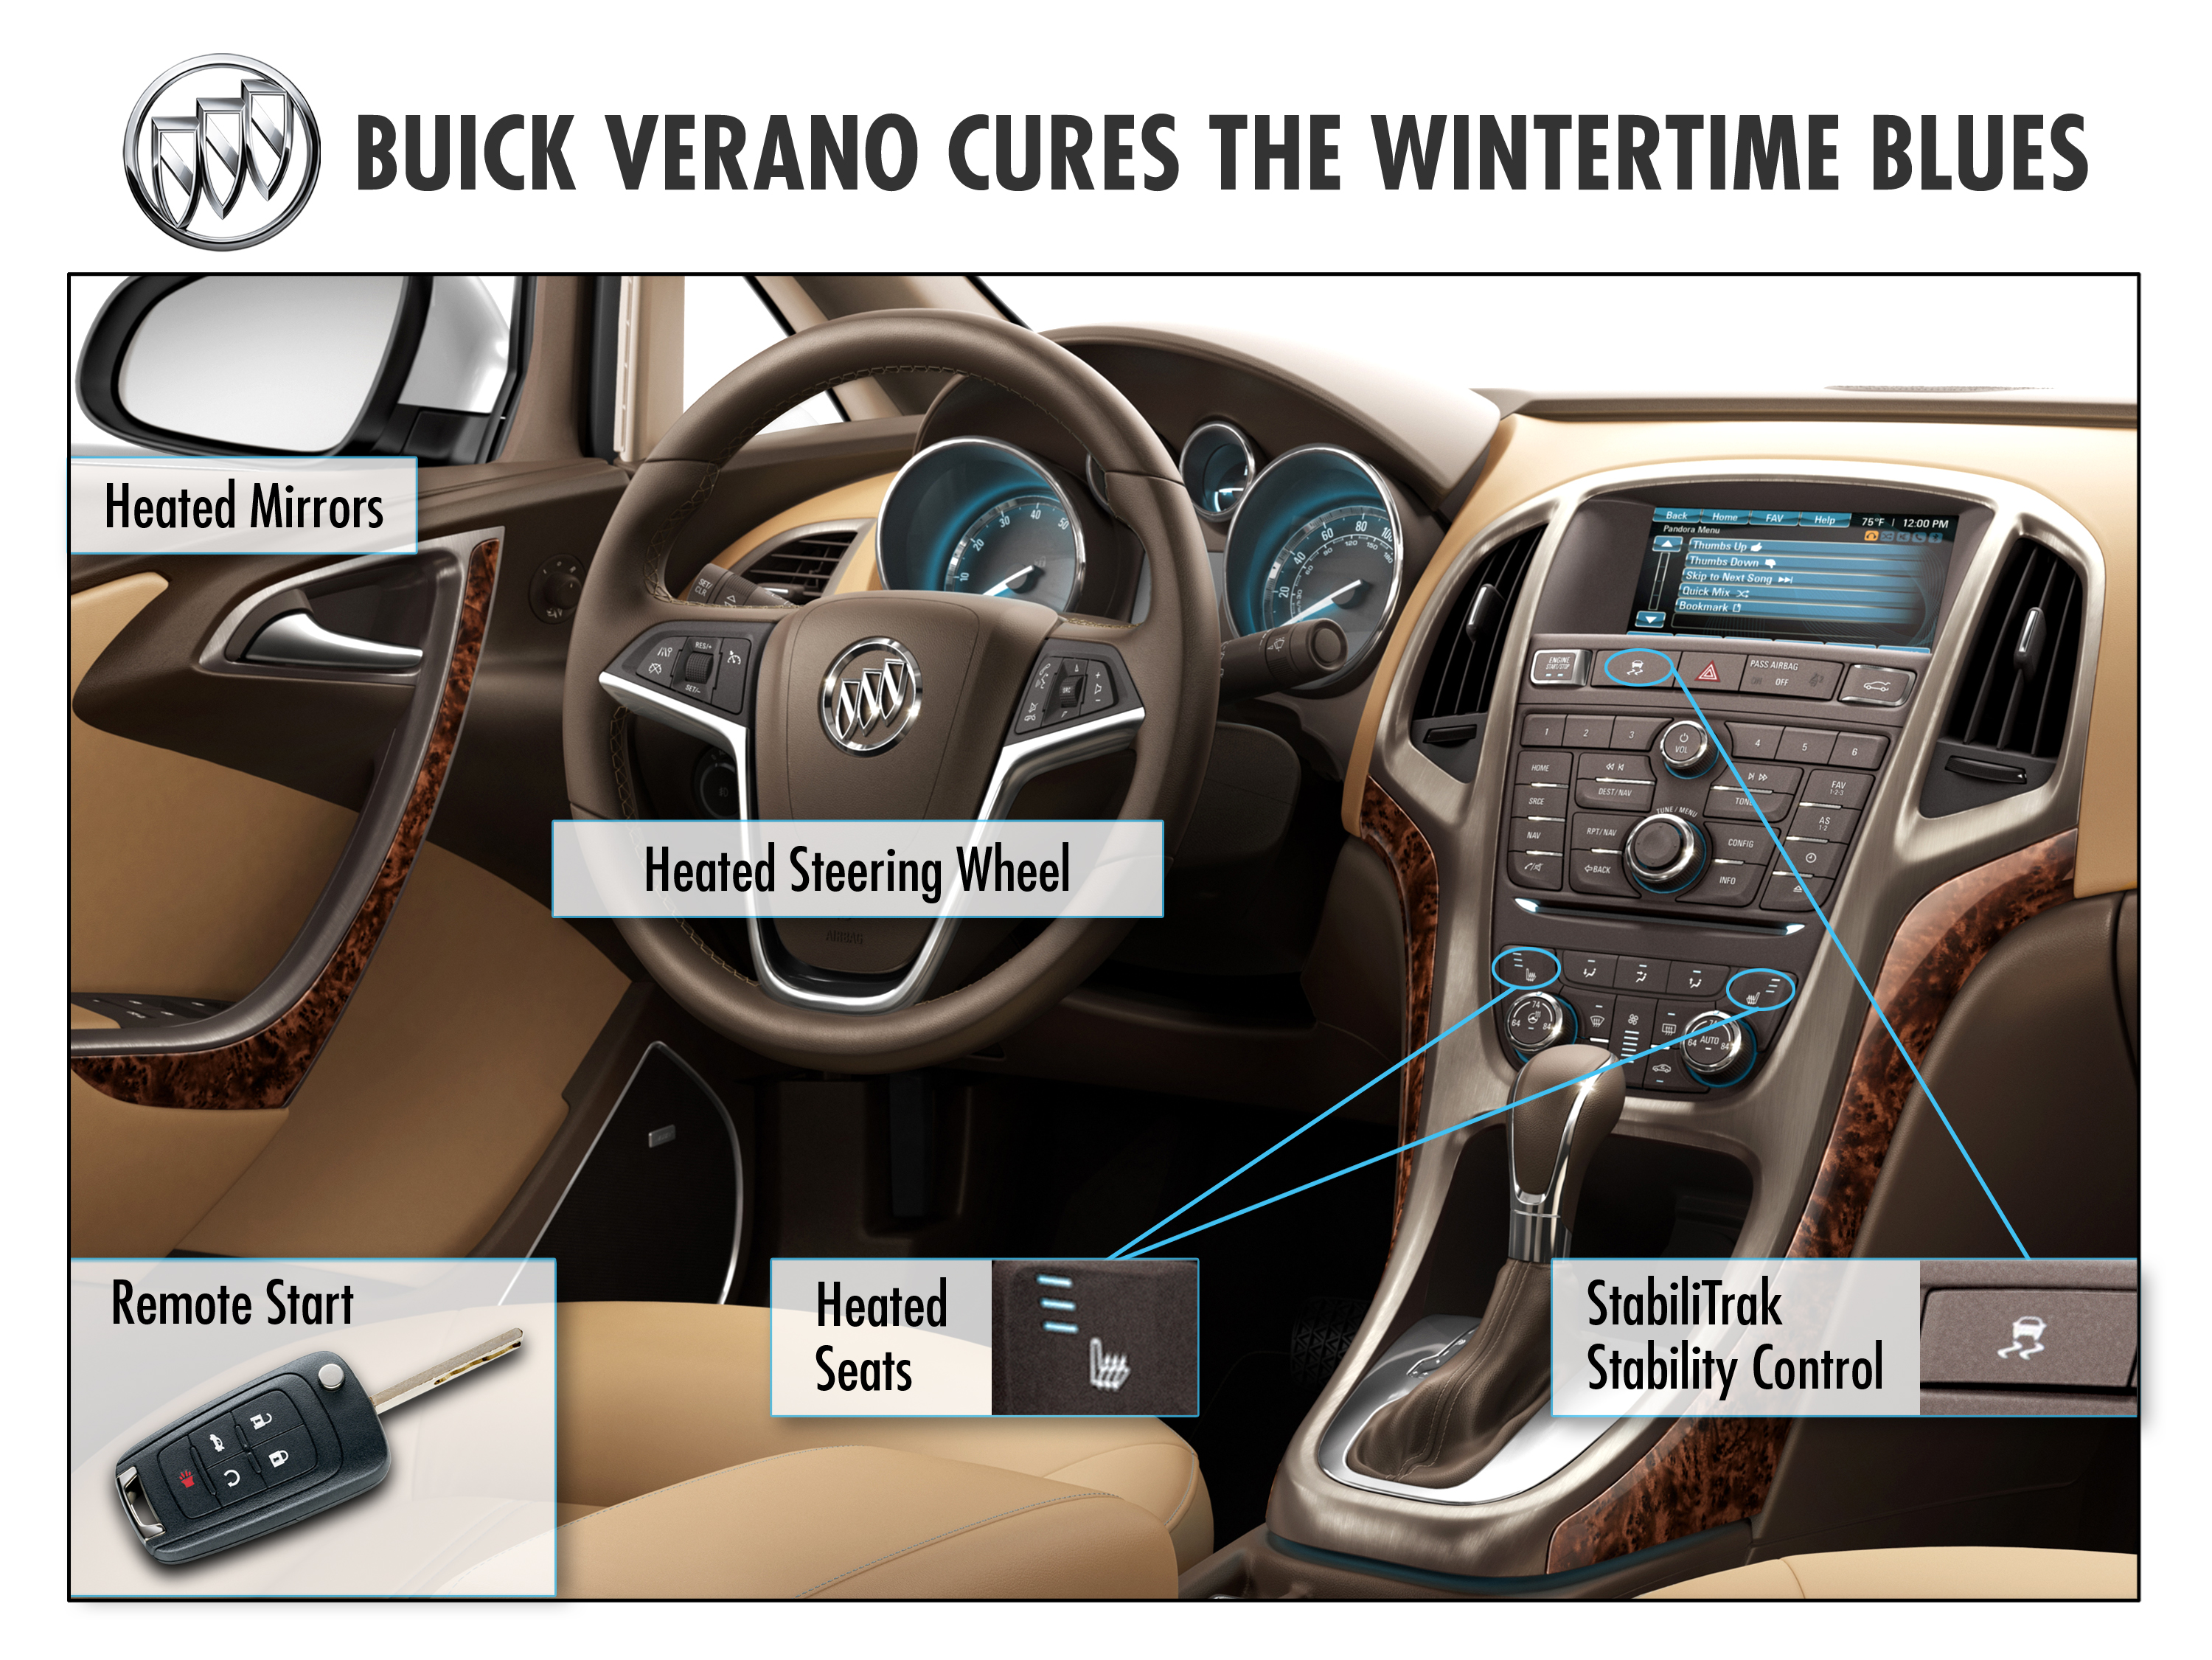 2012 Buick Verano Cures the Wintertime Blues